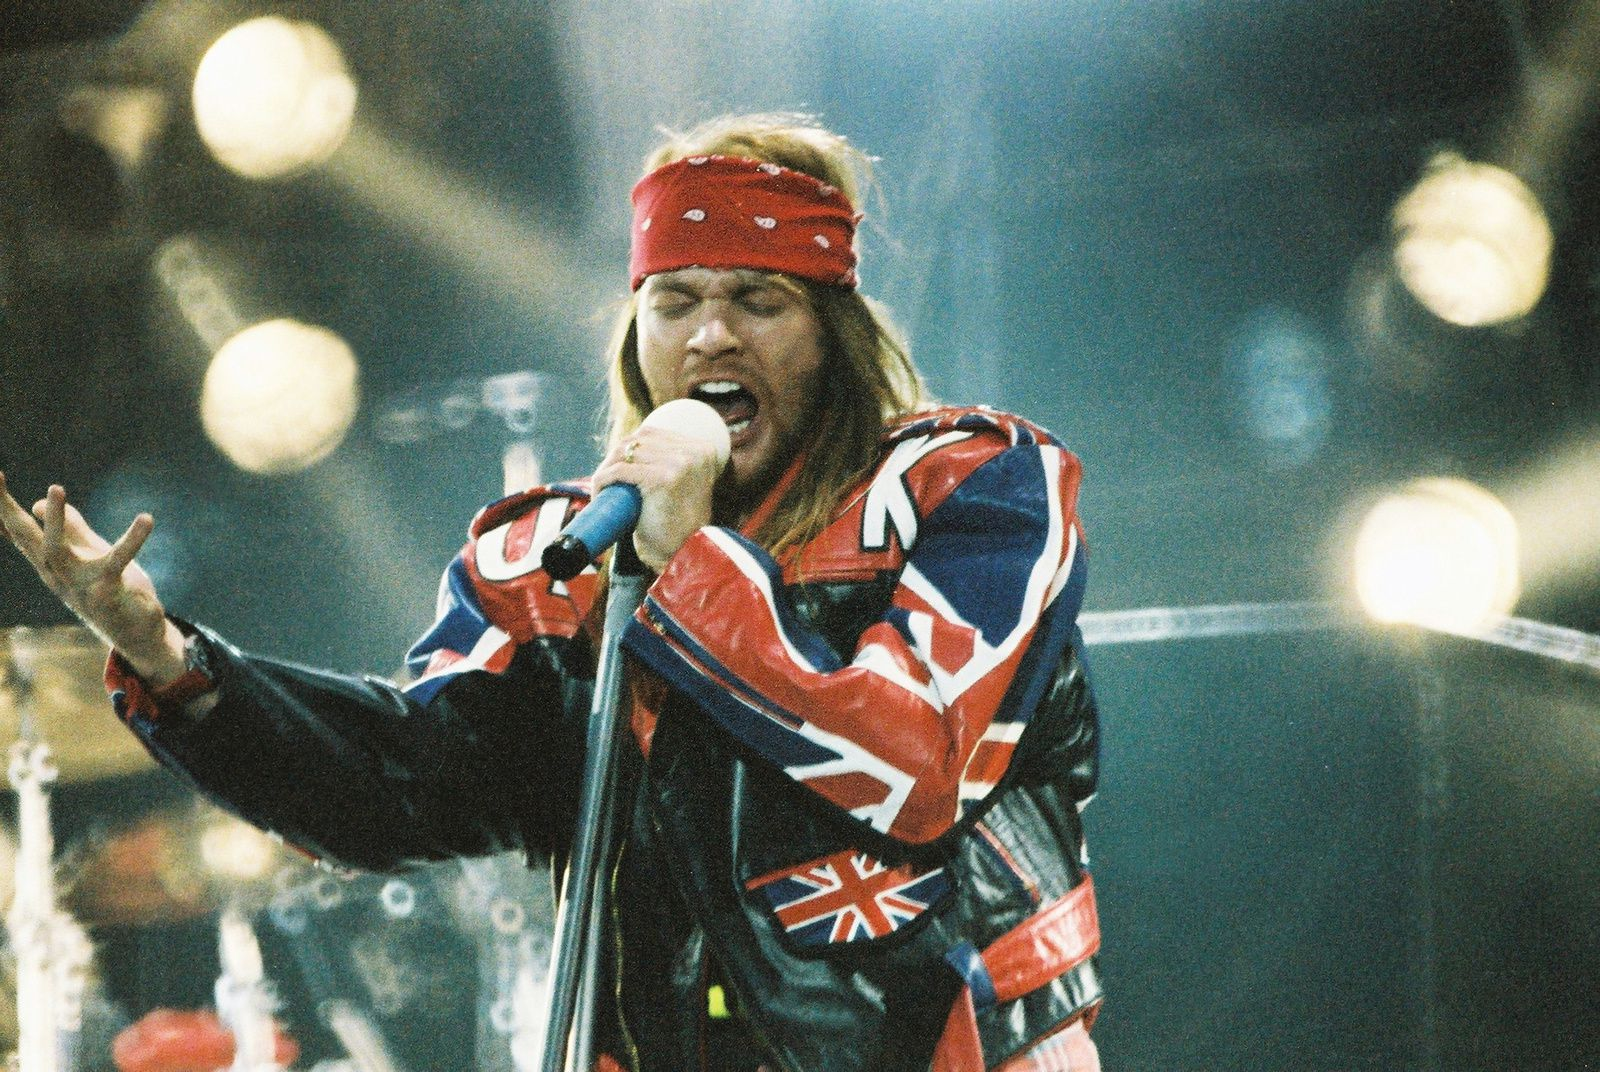 Axl Rose performs in London, England - photo: Peter Still/Redferns